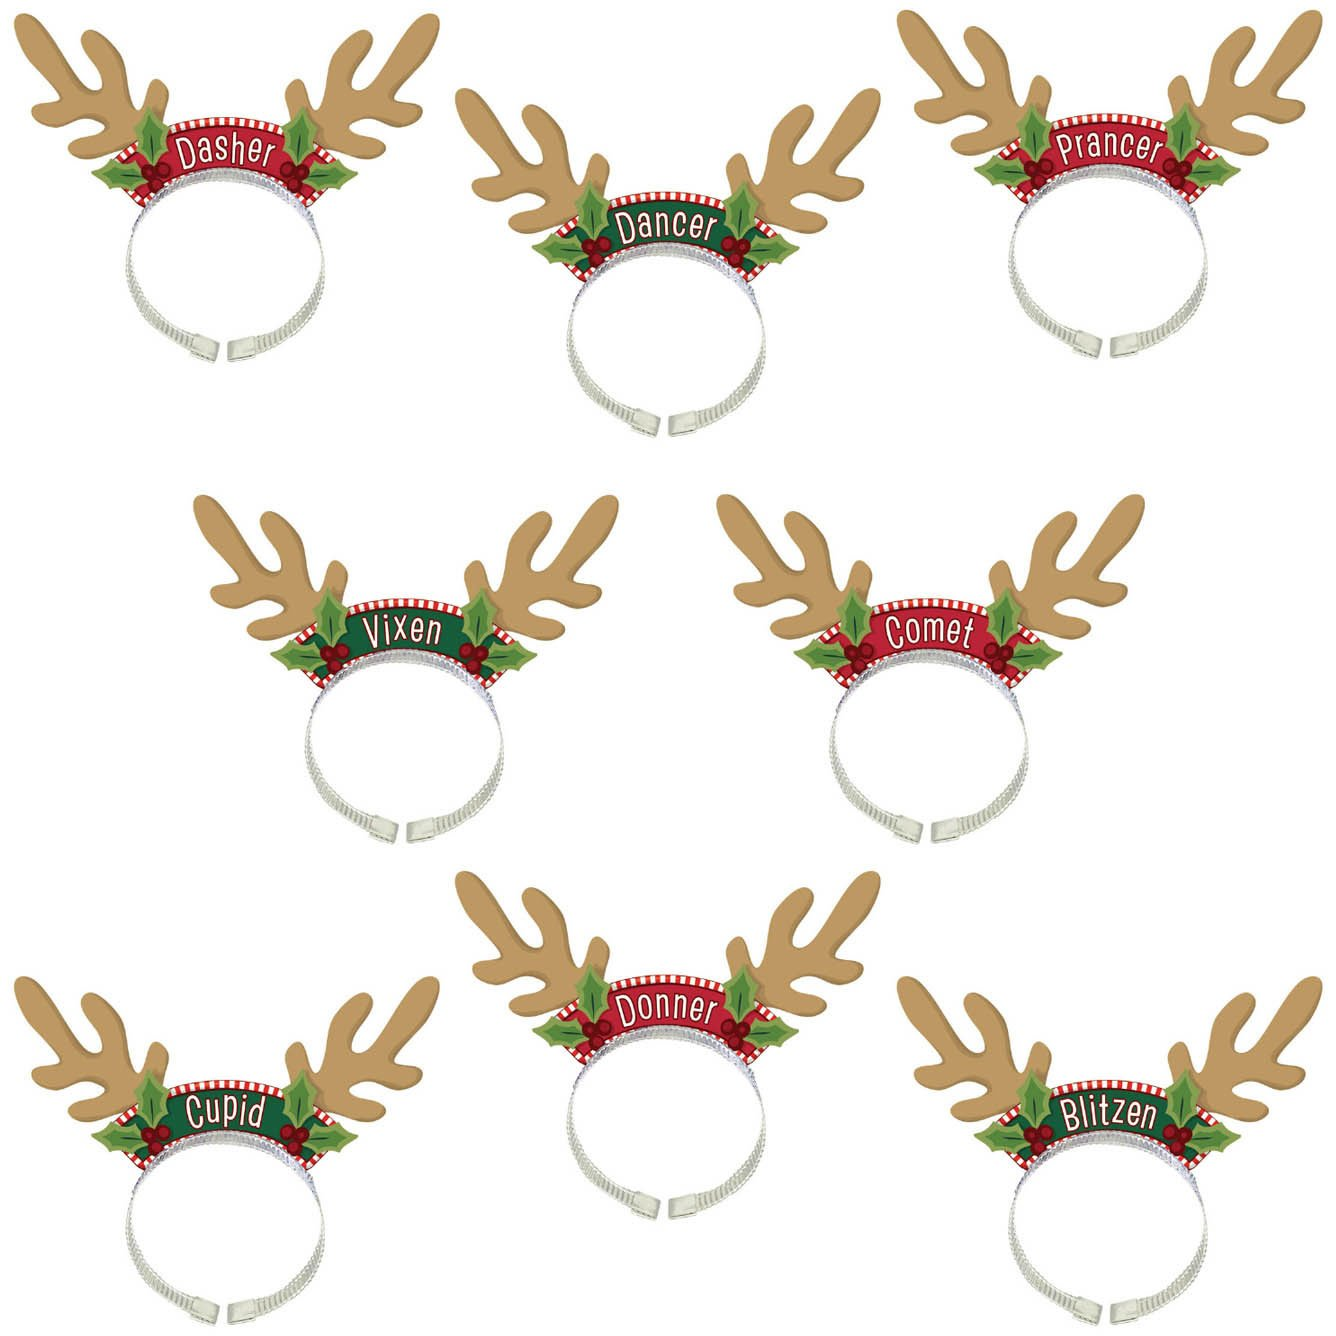 Brown reindeer antlers template images amp pictures becuo - Reindeer Headband Review Ebooks